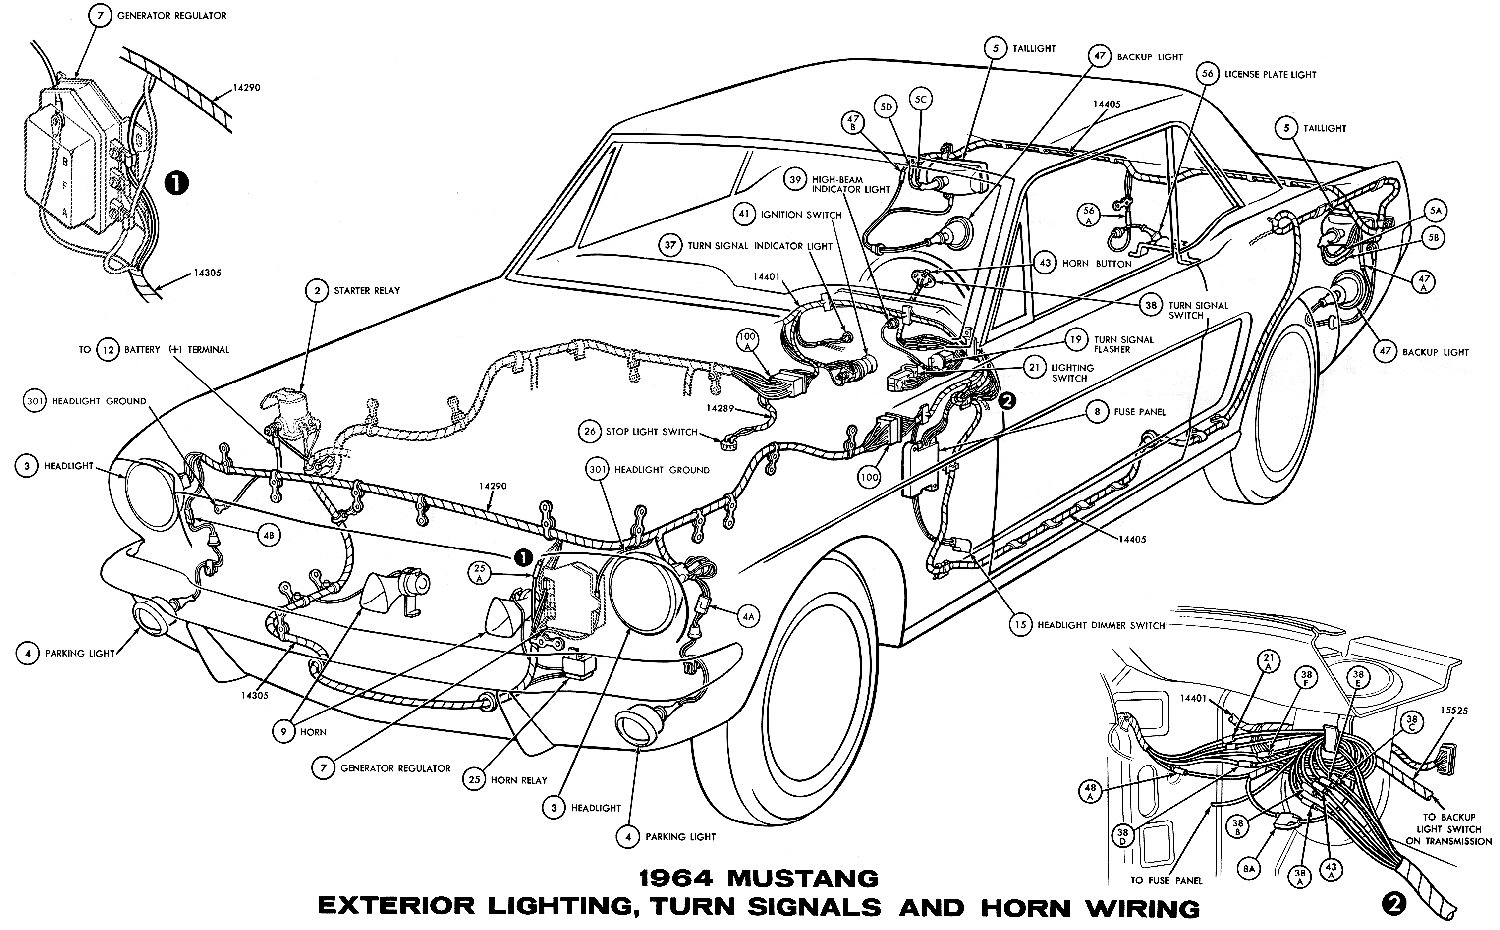 1969 mustang headlight wiring diagram   37 wiring diagram